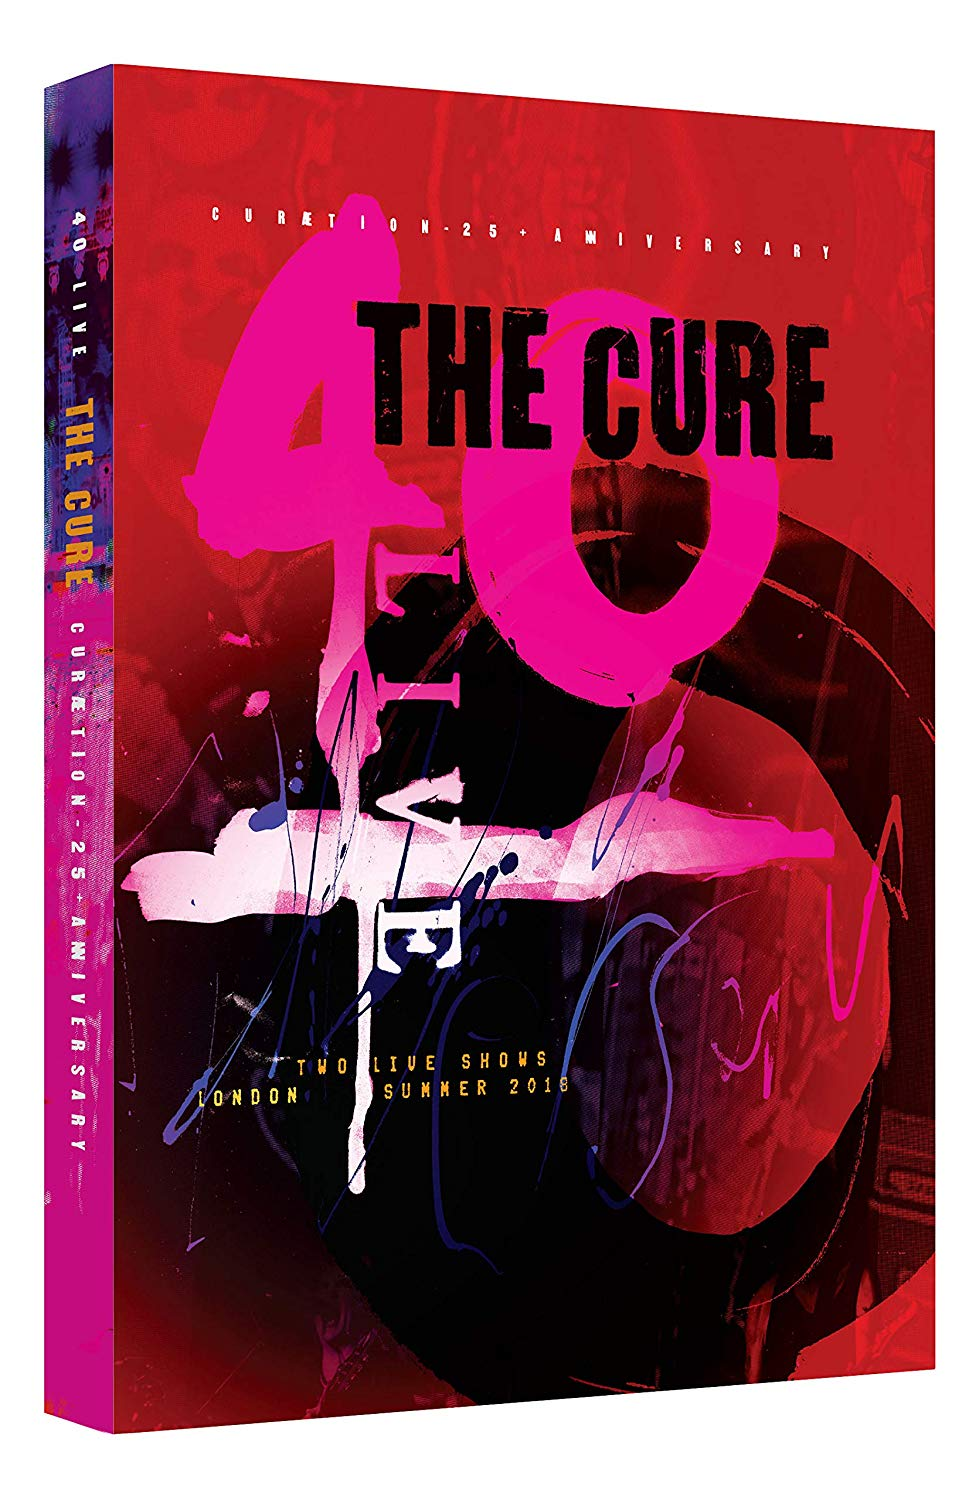 The Cure - 40 Live Curaetion 25 + Anniversary [Blu-ray]